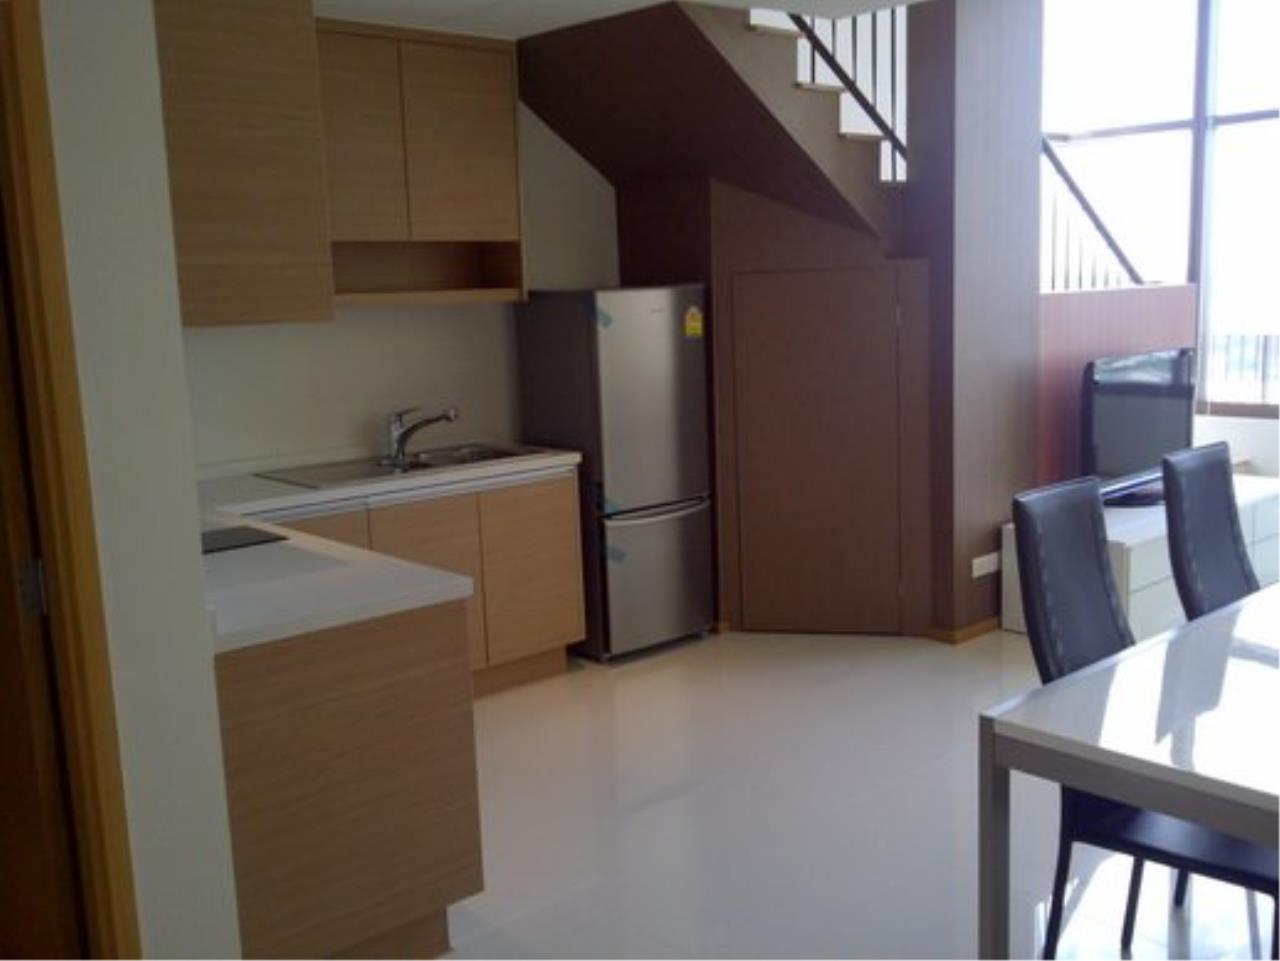 Piri Property Agency's Duplex 1 Bedroom Condo in the Emporio Place building for rent on high floor 7